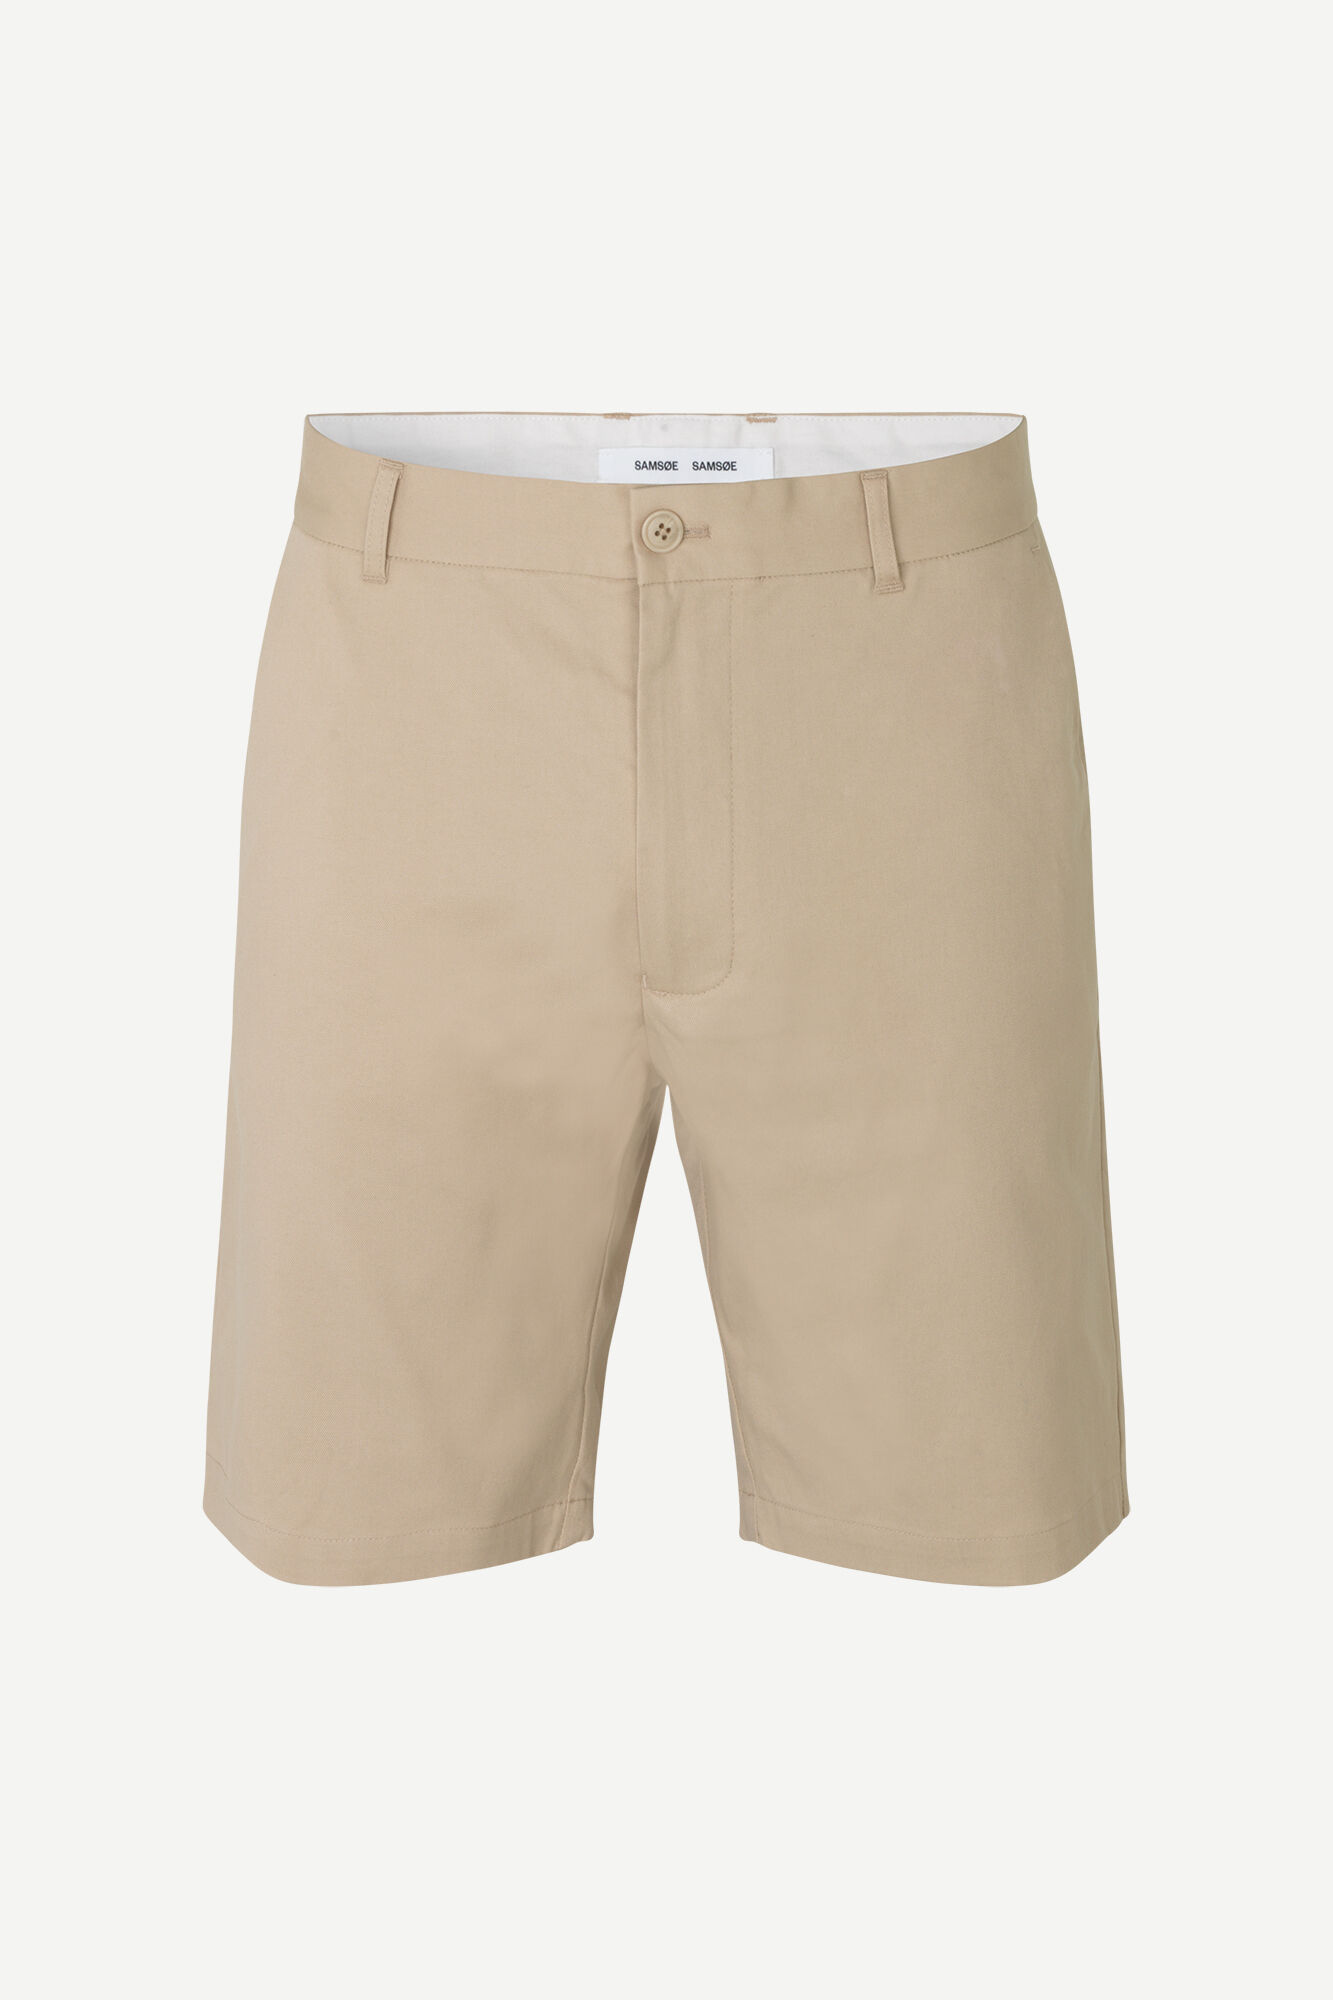 Andy x shorts 7321